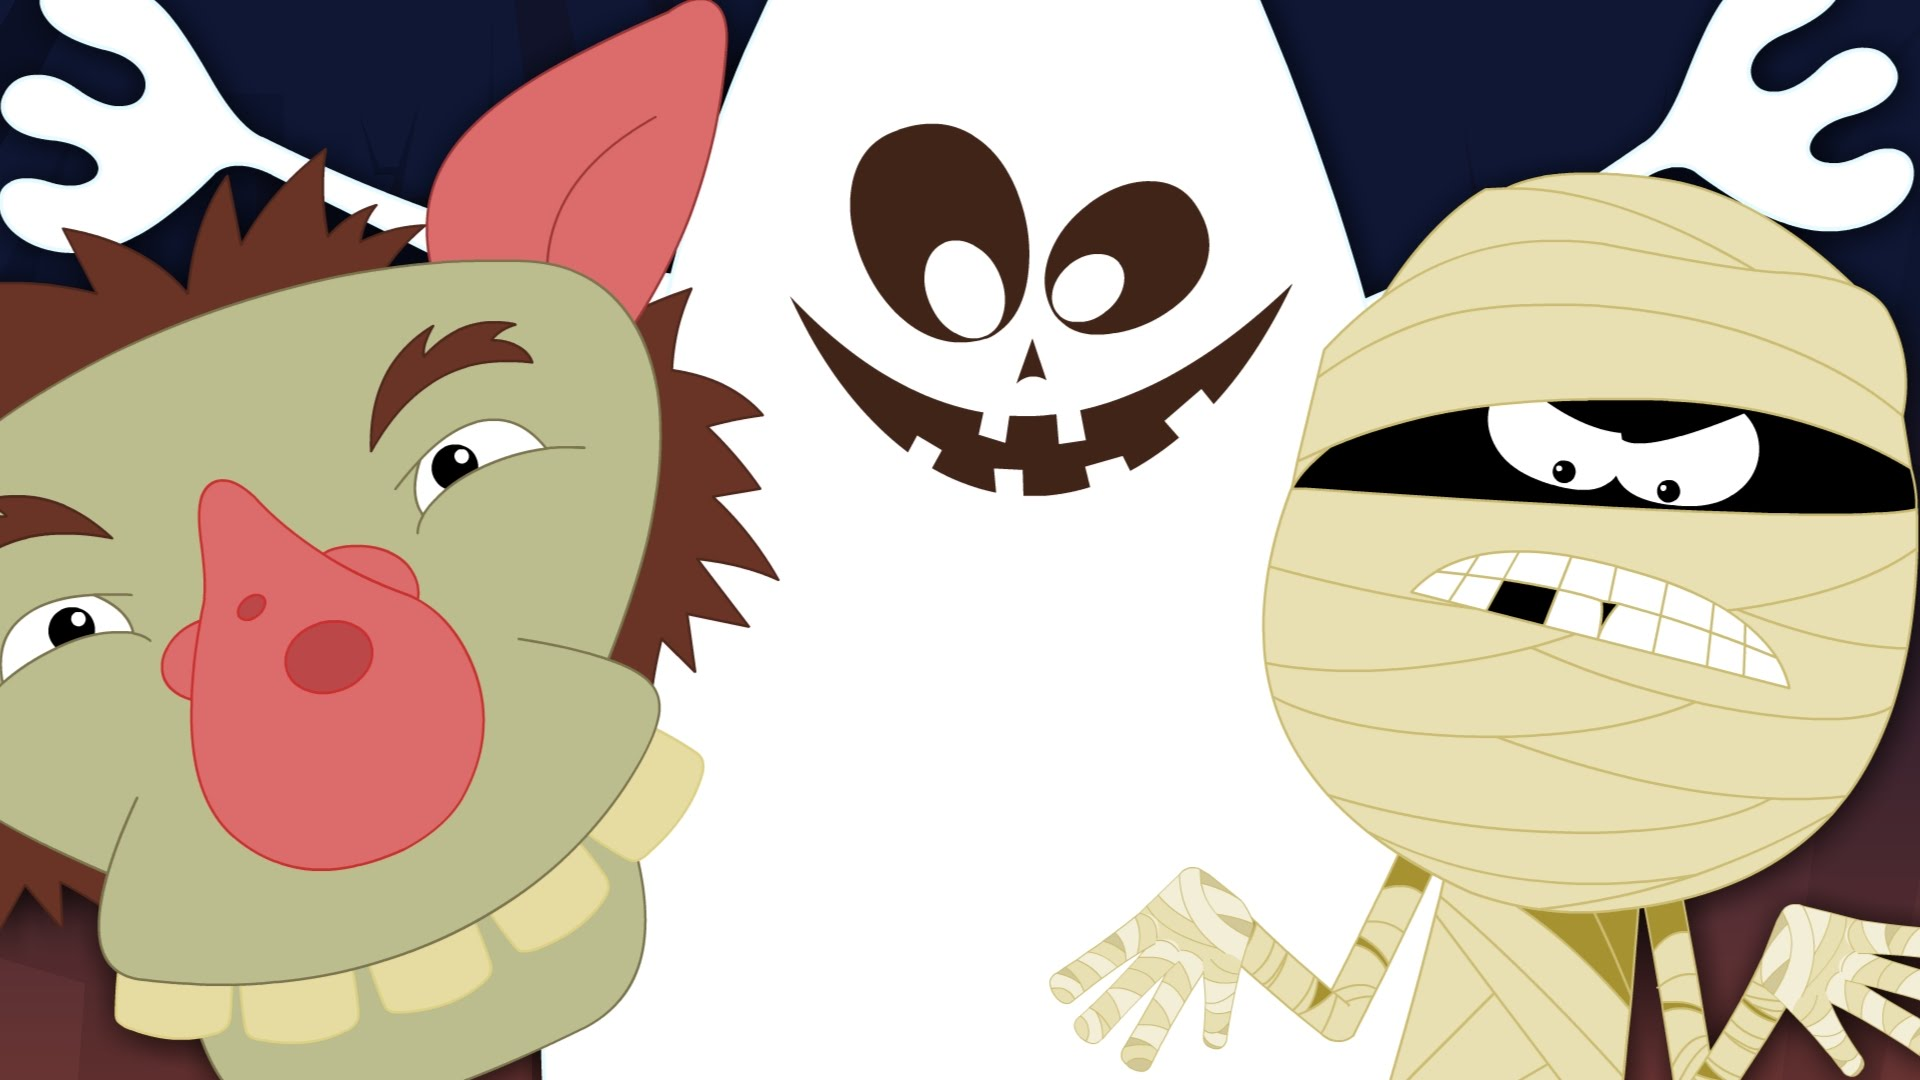 Zebra clipart adorable Rhymes Monsters Rhymes Halloween More